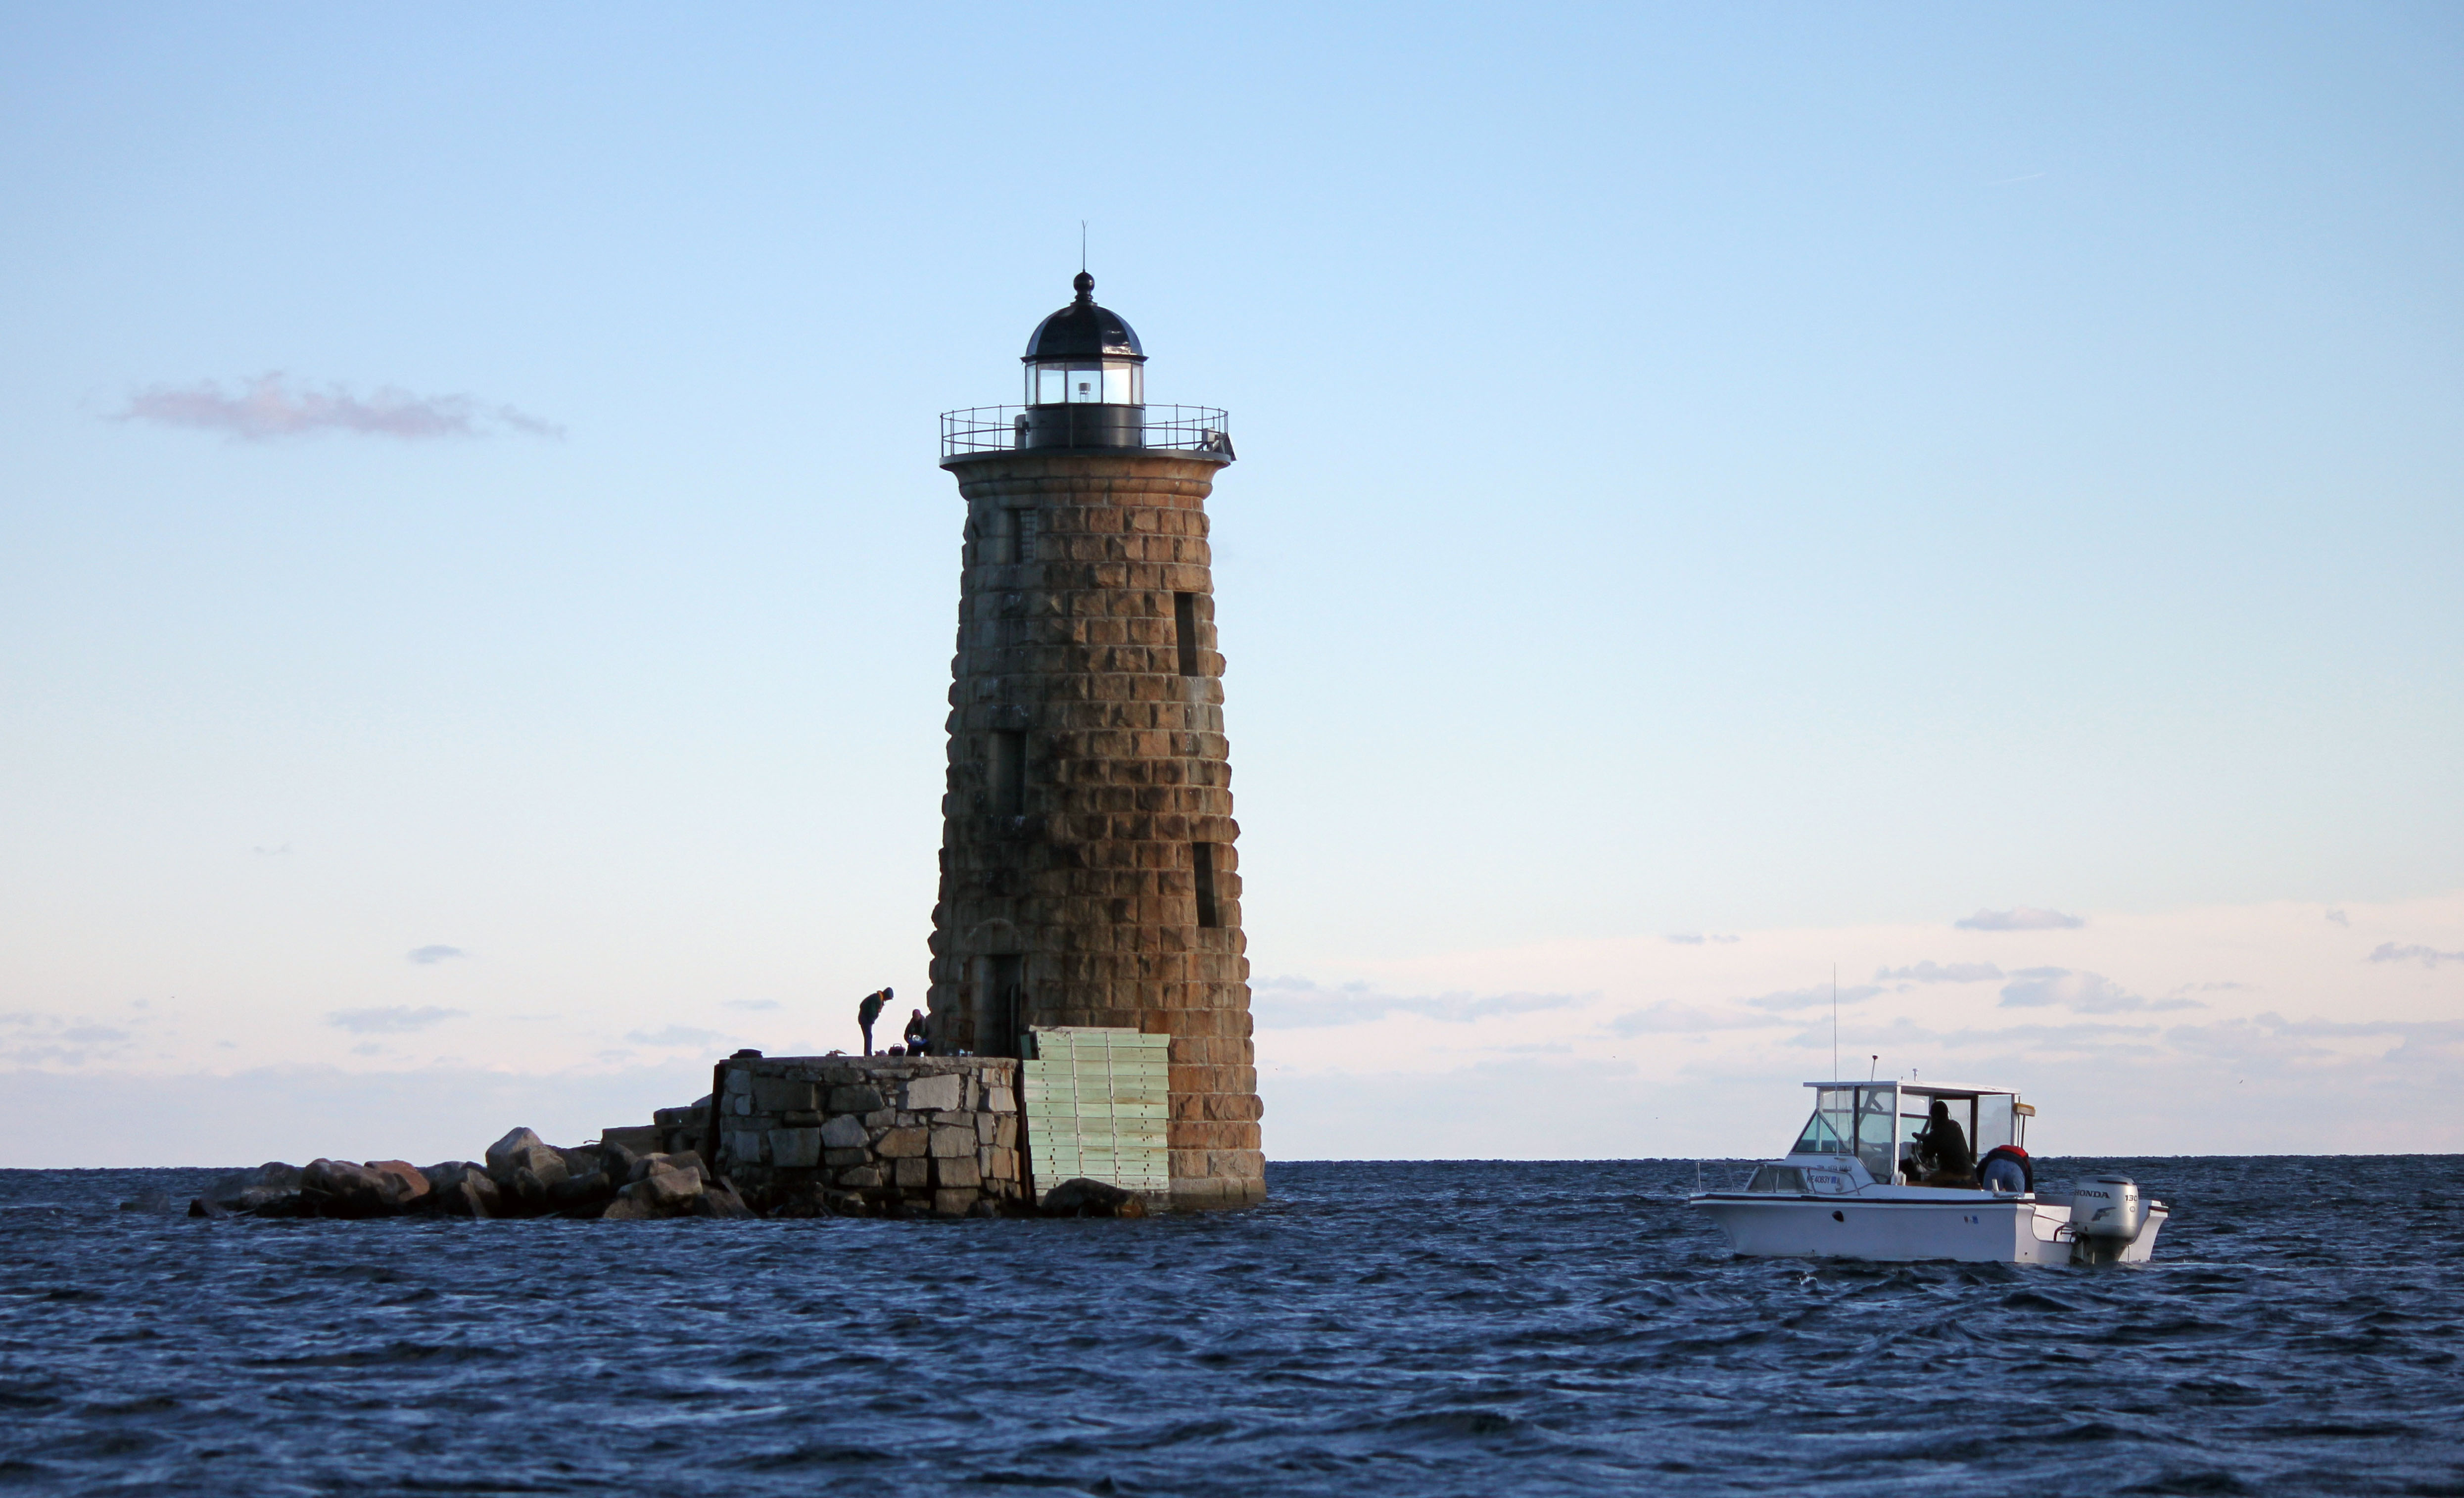 Mission Completed As Creekman Swims To Whaleback Lighthouse